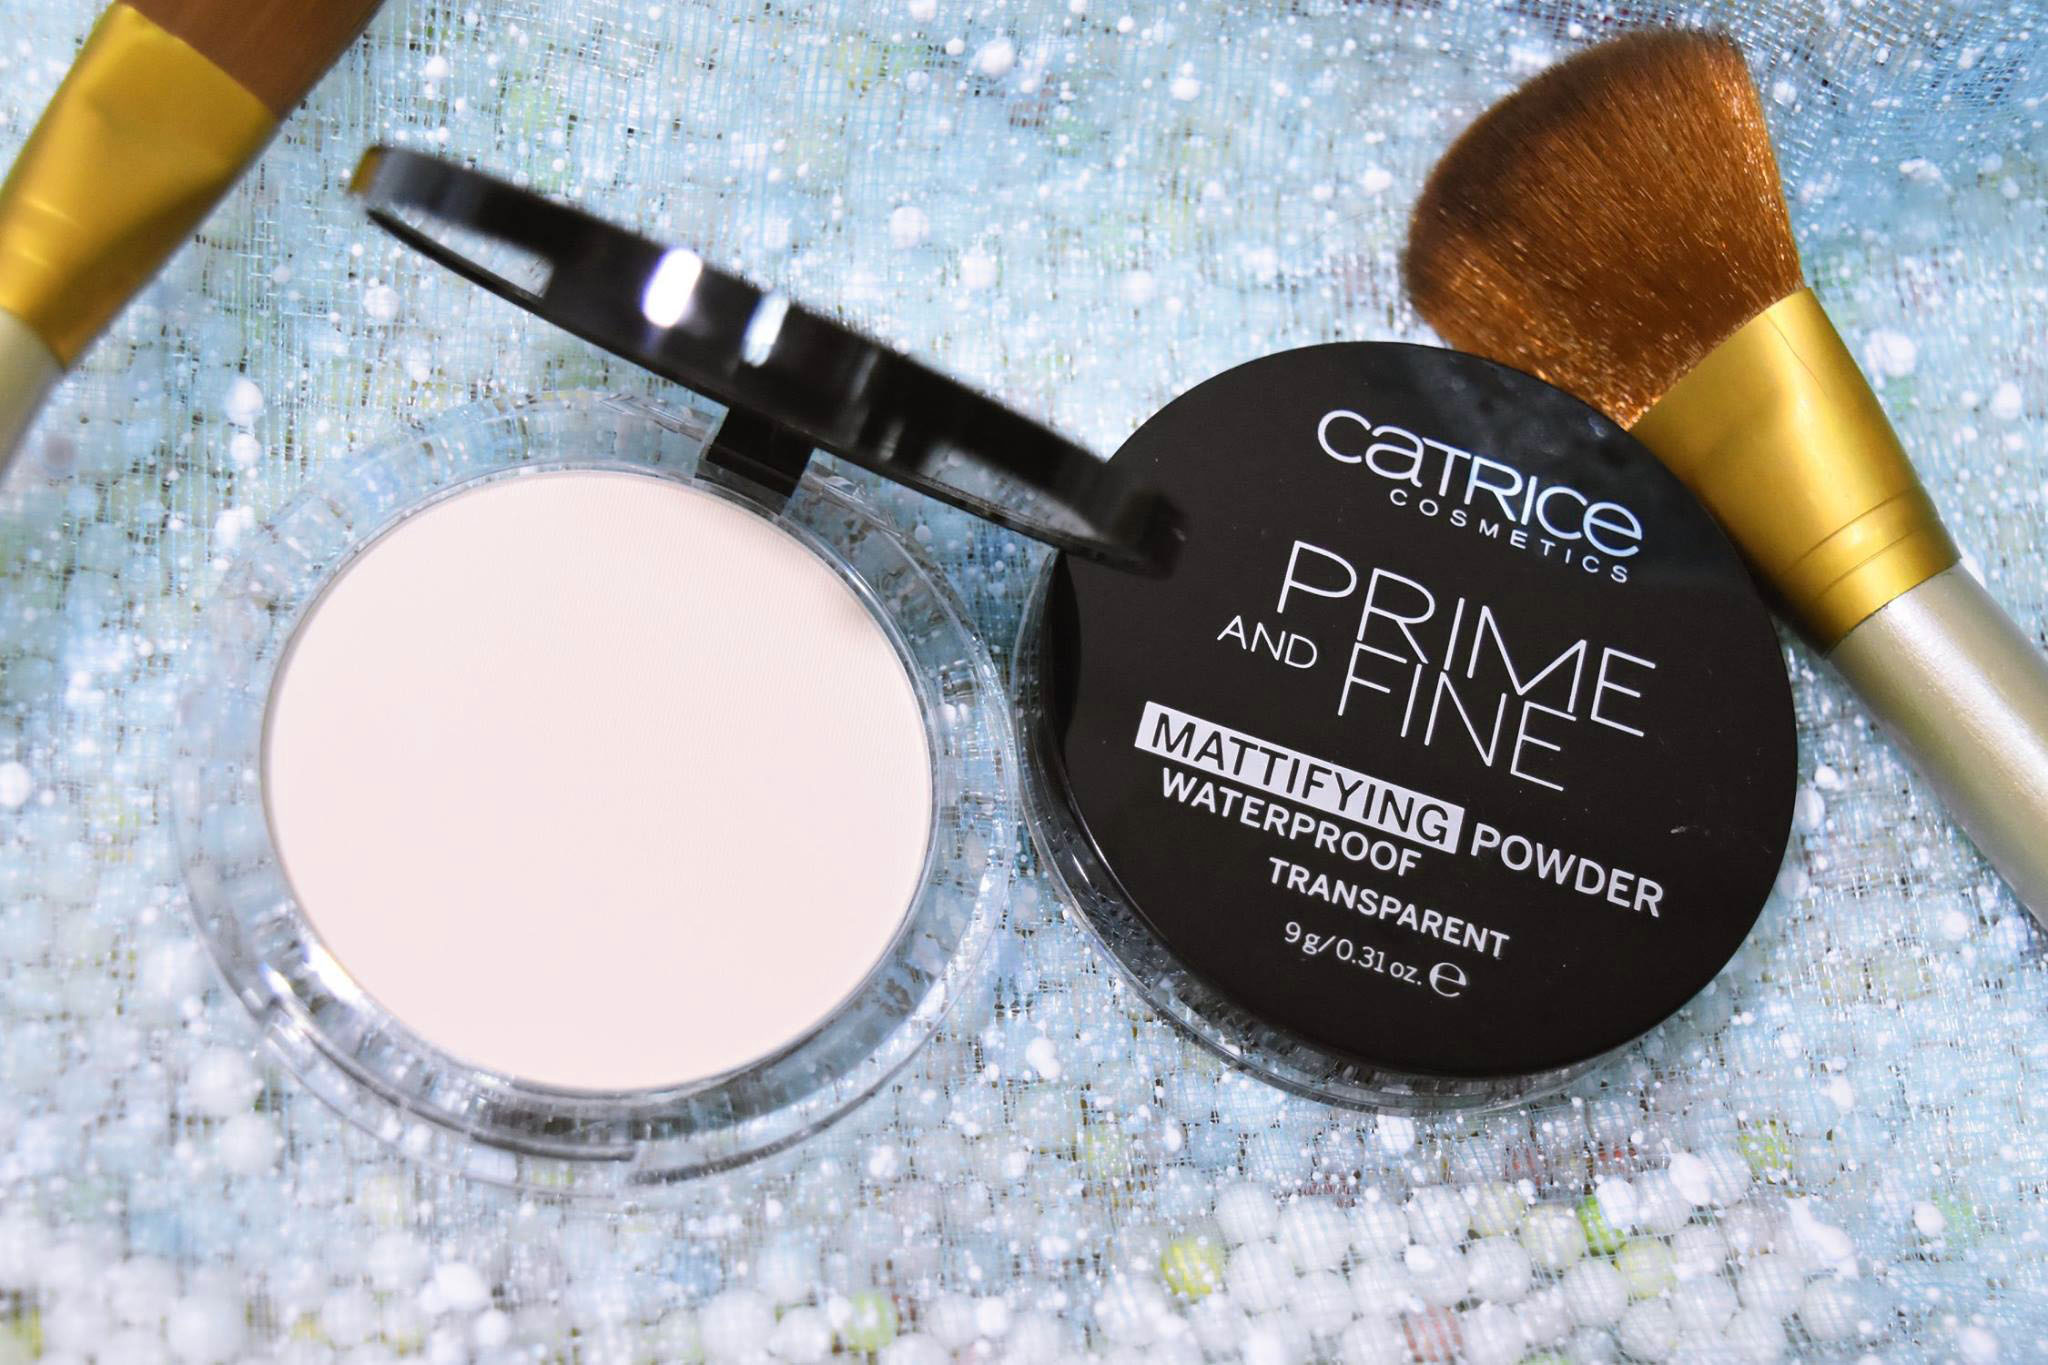 phan-phu-chong-tham-nuoc-catrice-gesichtspuder-prime-and-fine-mattifying-powder-waterproof-translucent